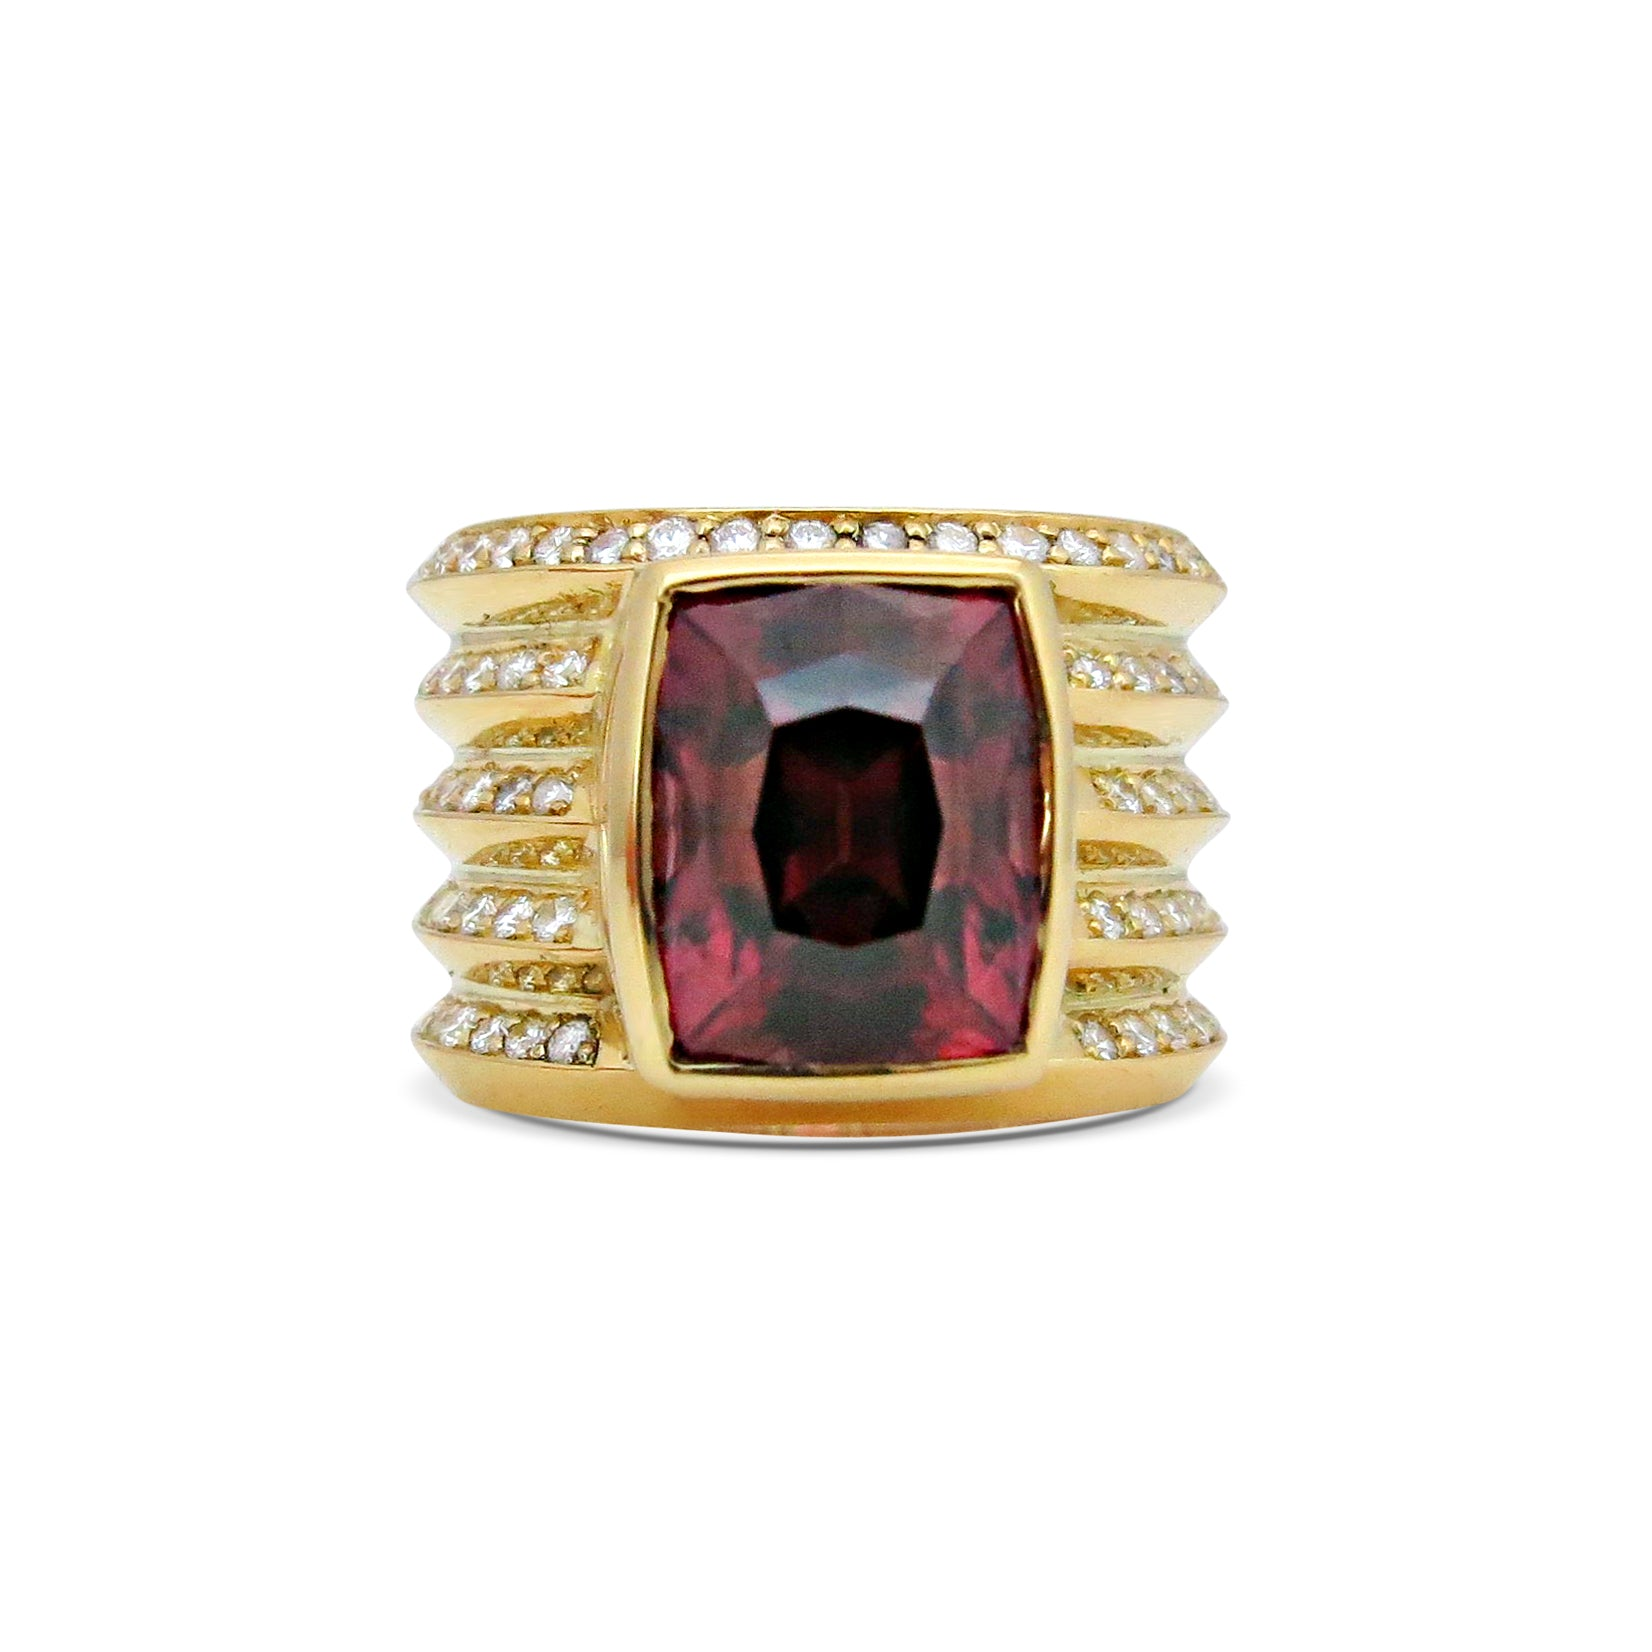 Tanzanian Zircon with White Diamonds 18ct Yellow Gold